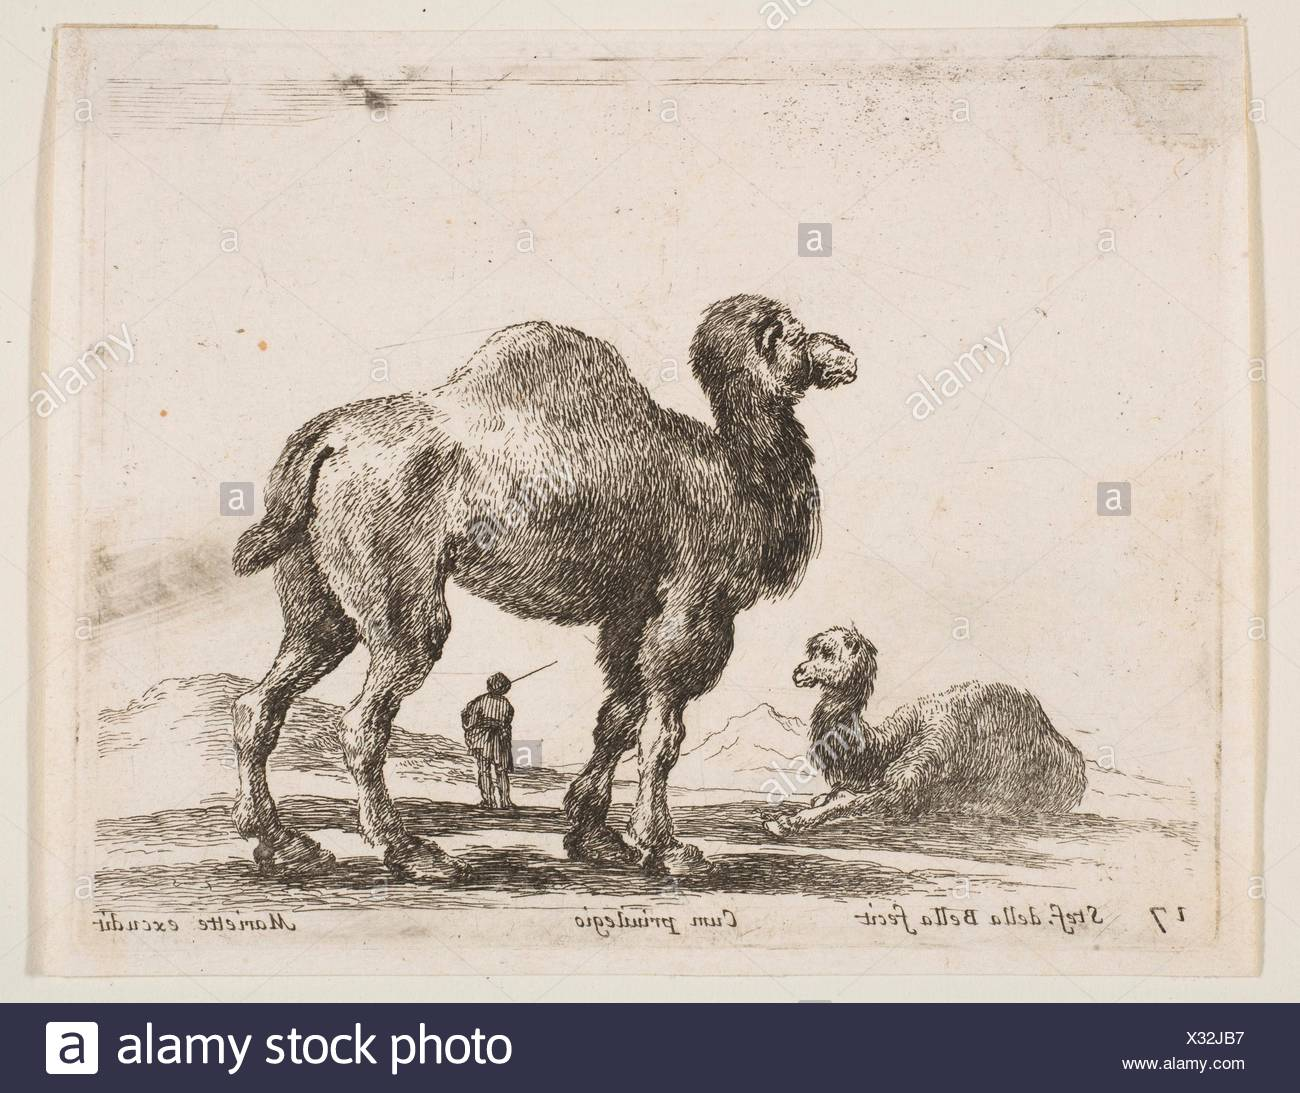 Plate 17: camels, from 'Various animals' (Diversi animali). Series/Portfolio: 'Various animals' (Diversi animali); Artist: Stefano della Bella - Stock Image